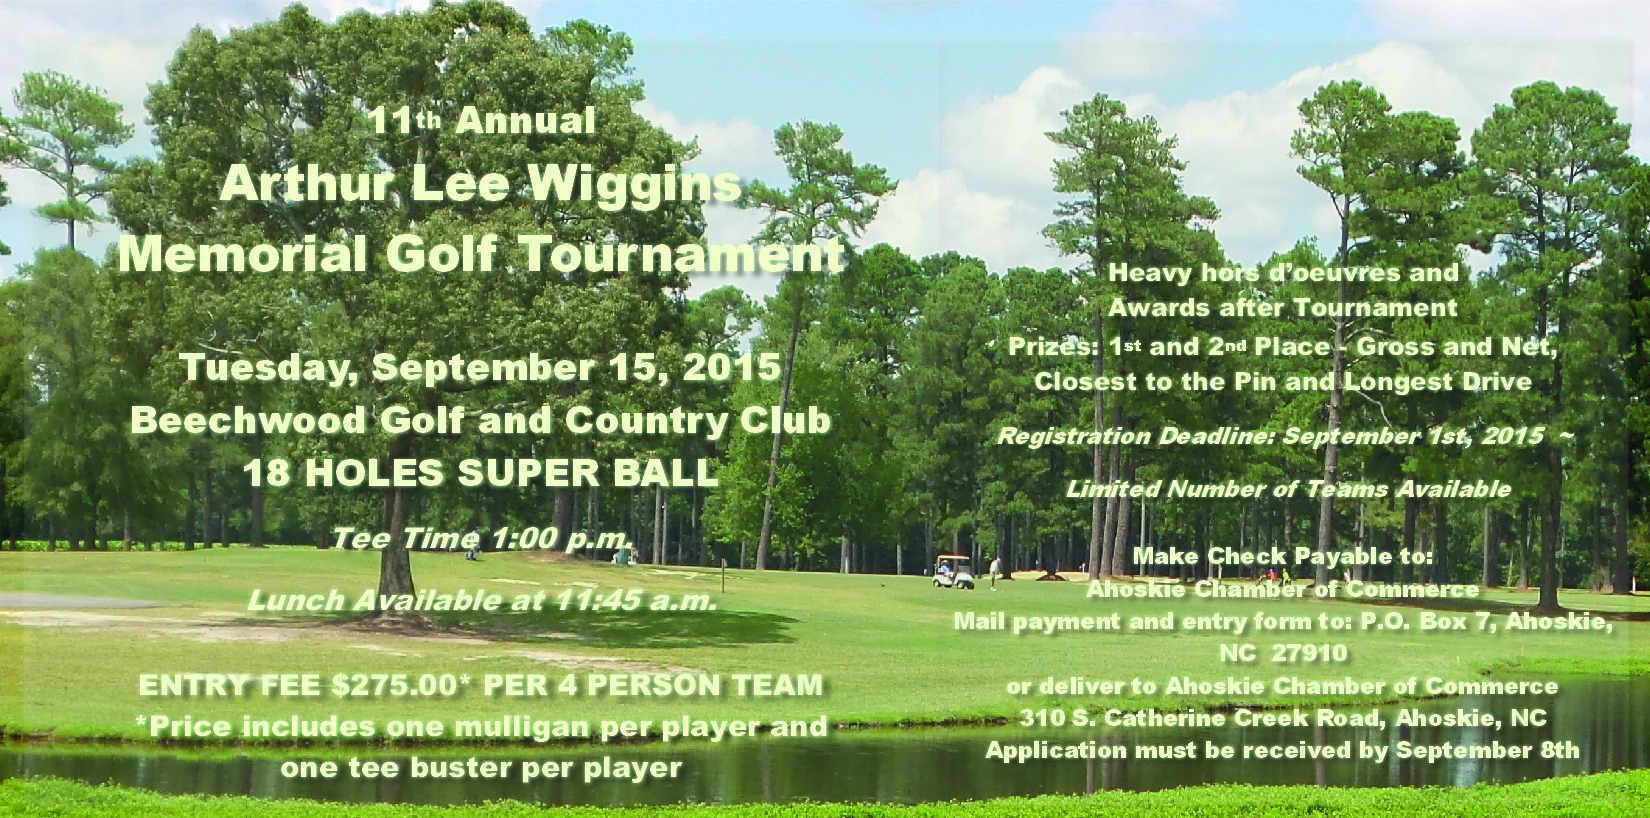 11th Annual Arthur Lee Wiggins Golf Tournament!